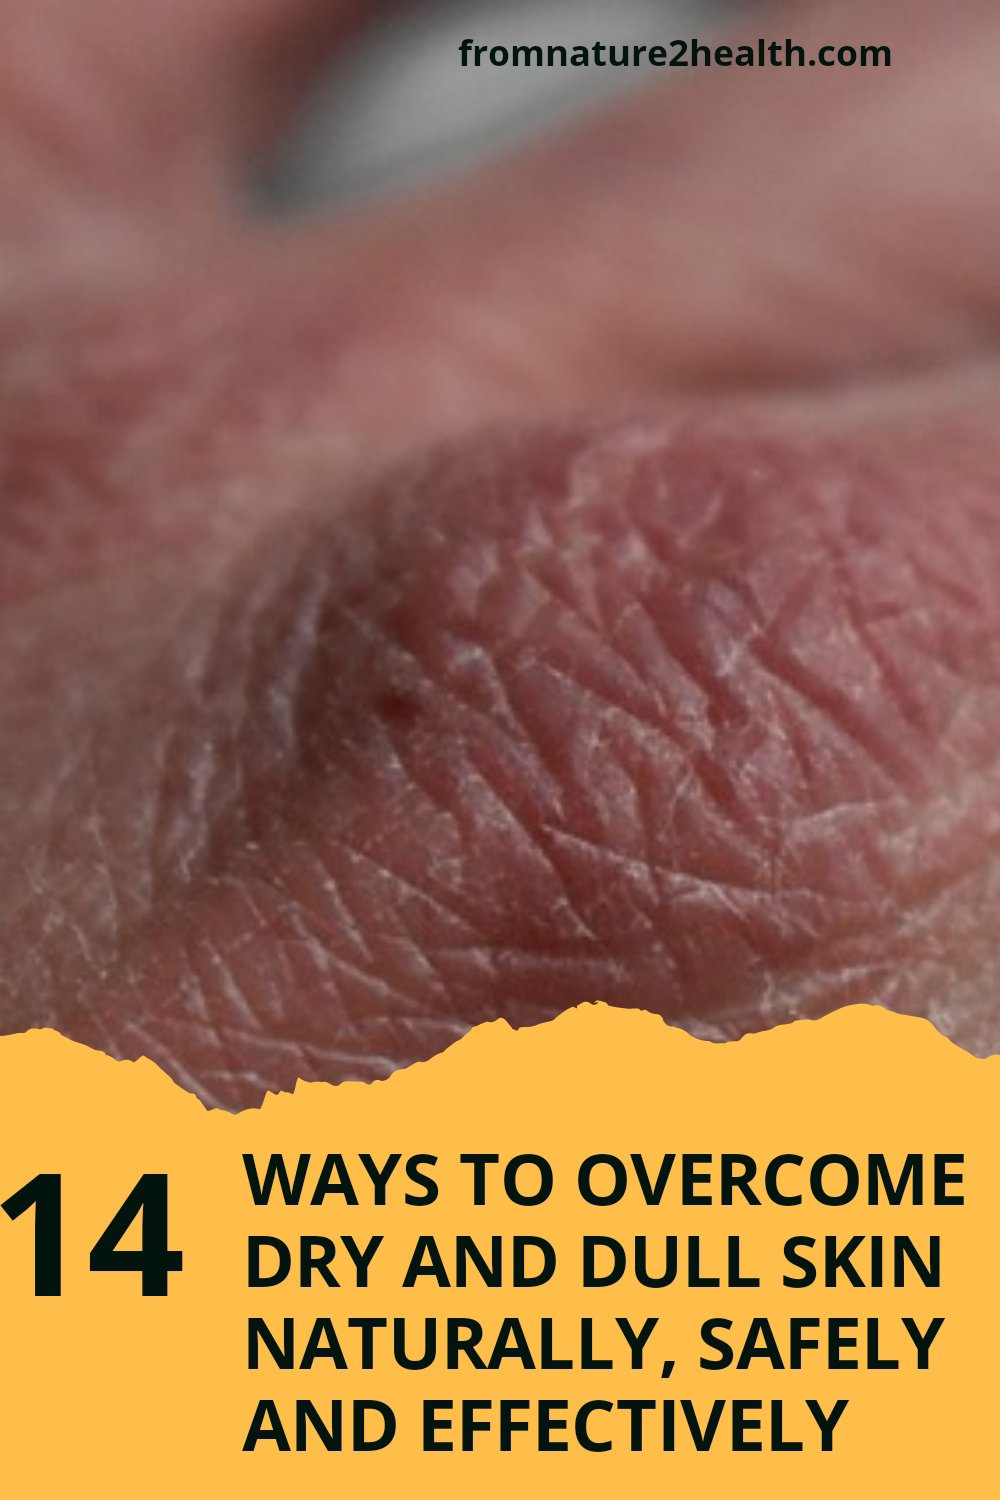 14 Ways to Overcome Dry and Dull Skin Naturally with almond, avocado, coconut oil, cranberries